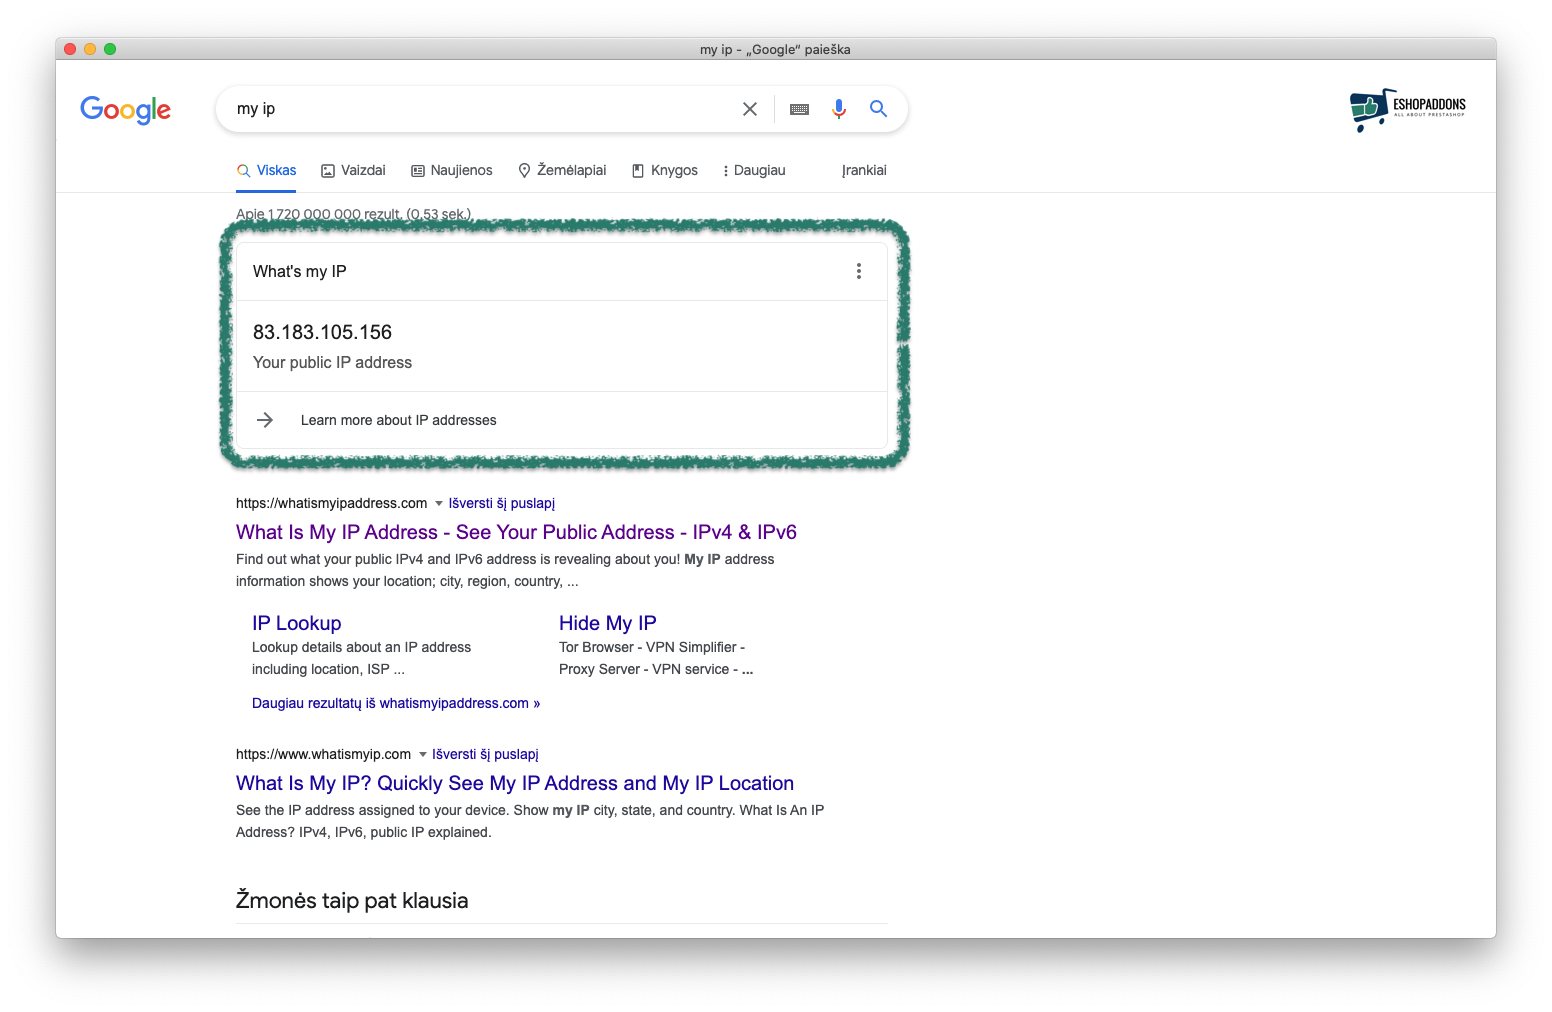 Figure out your IP address straight from the Google Results page